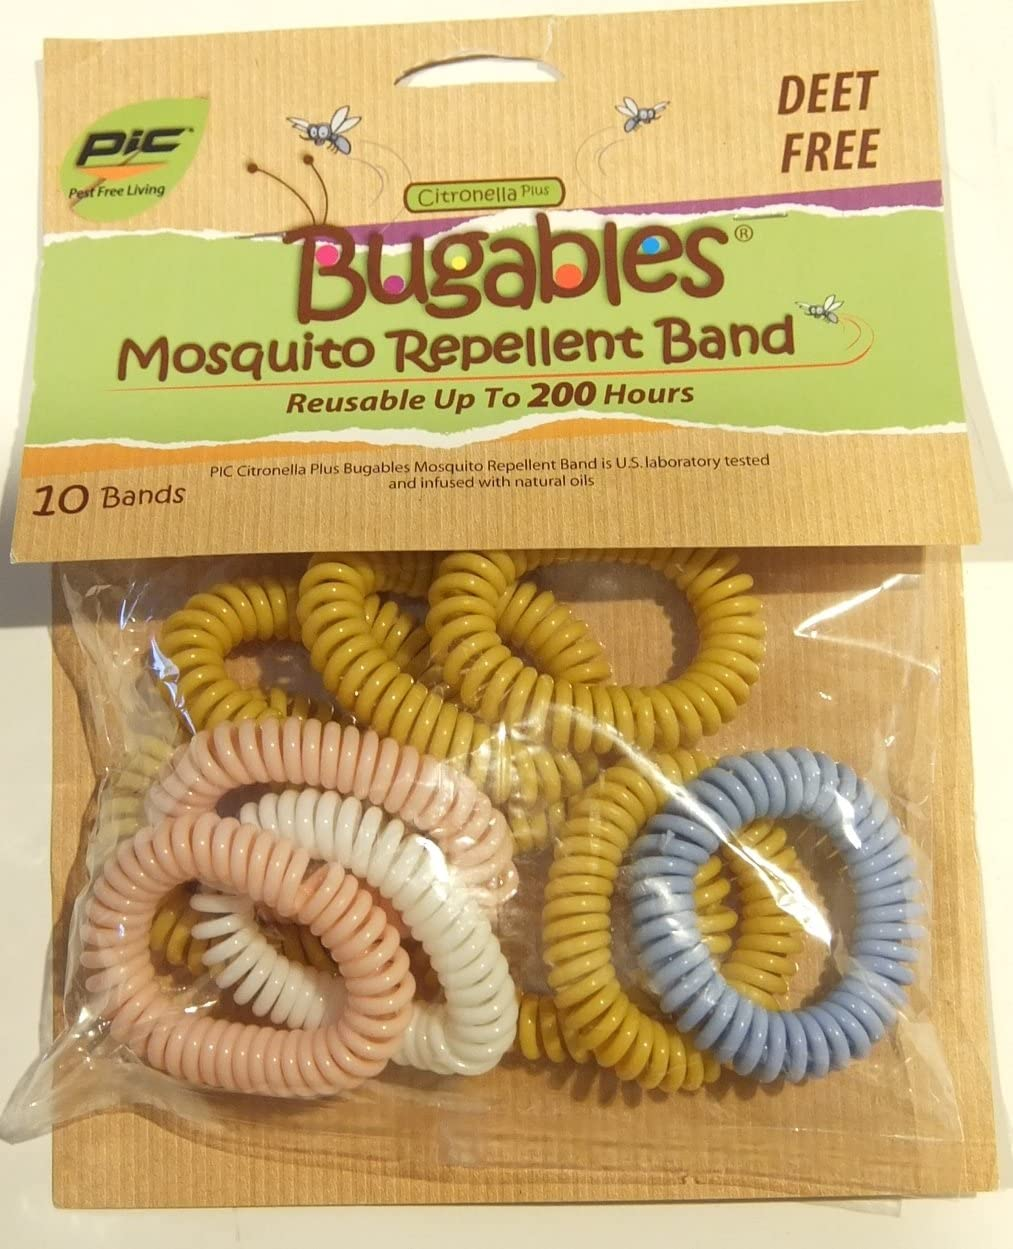 Bugables Deet Free Mosquito Repellent Spiral Coil Band, Citronella Plus, Assorted Colors (Pack of 10)